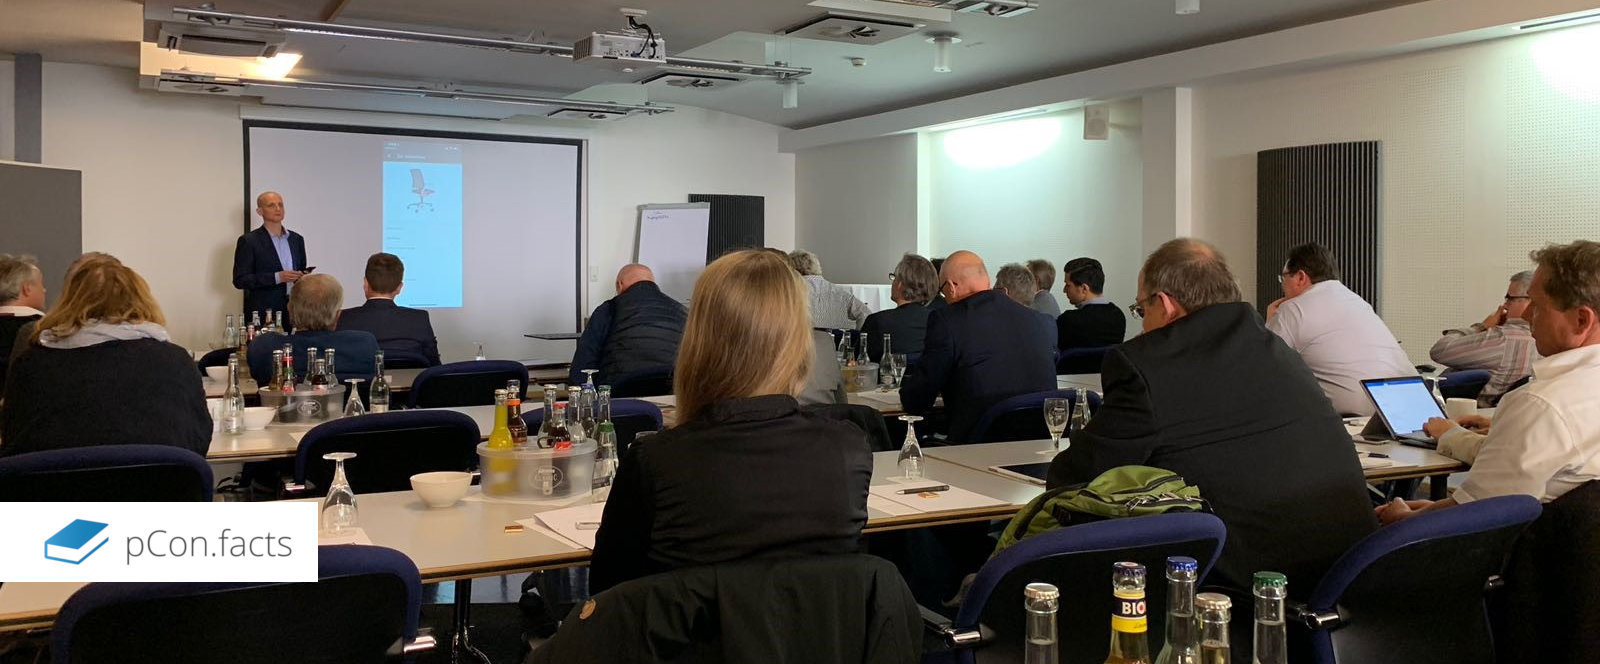 pCon.facts presentation in Fulda